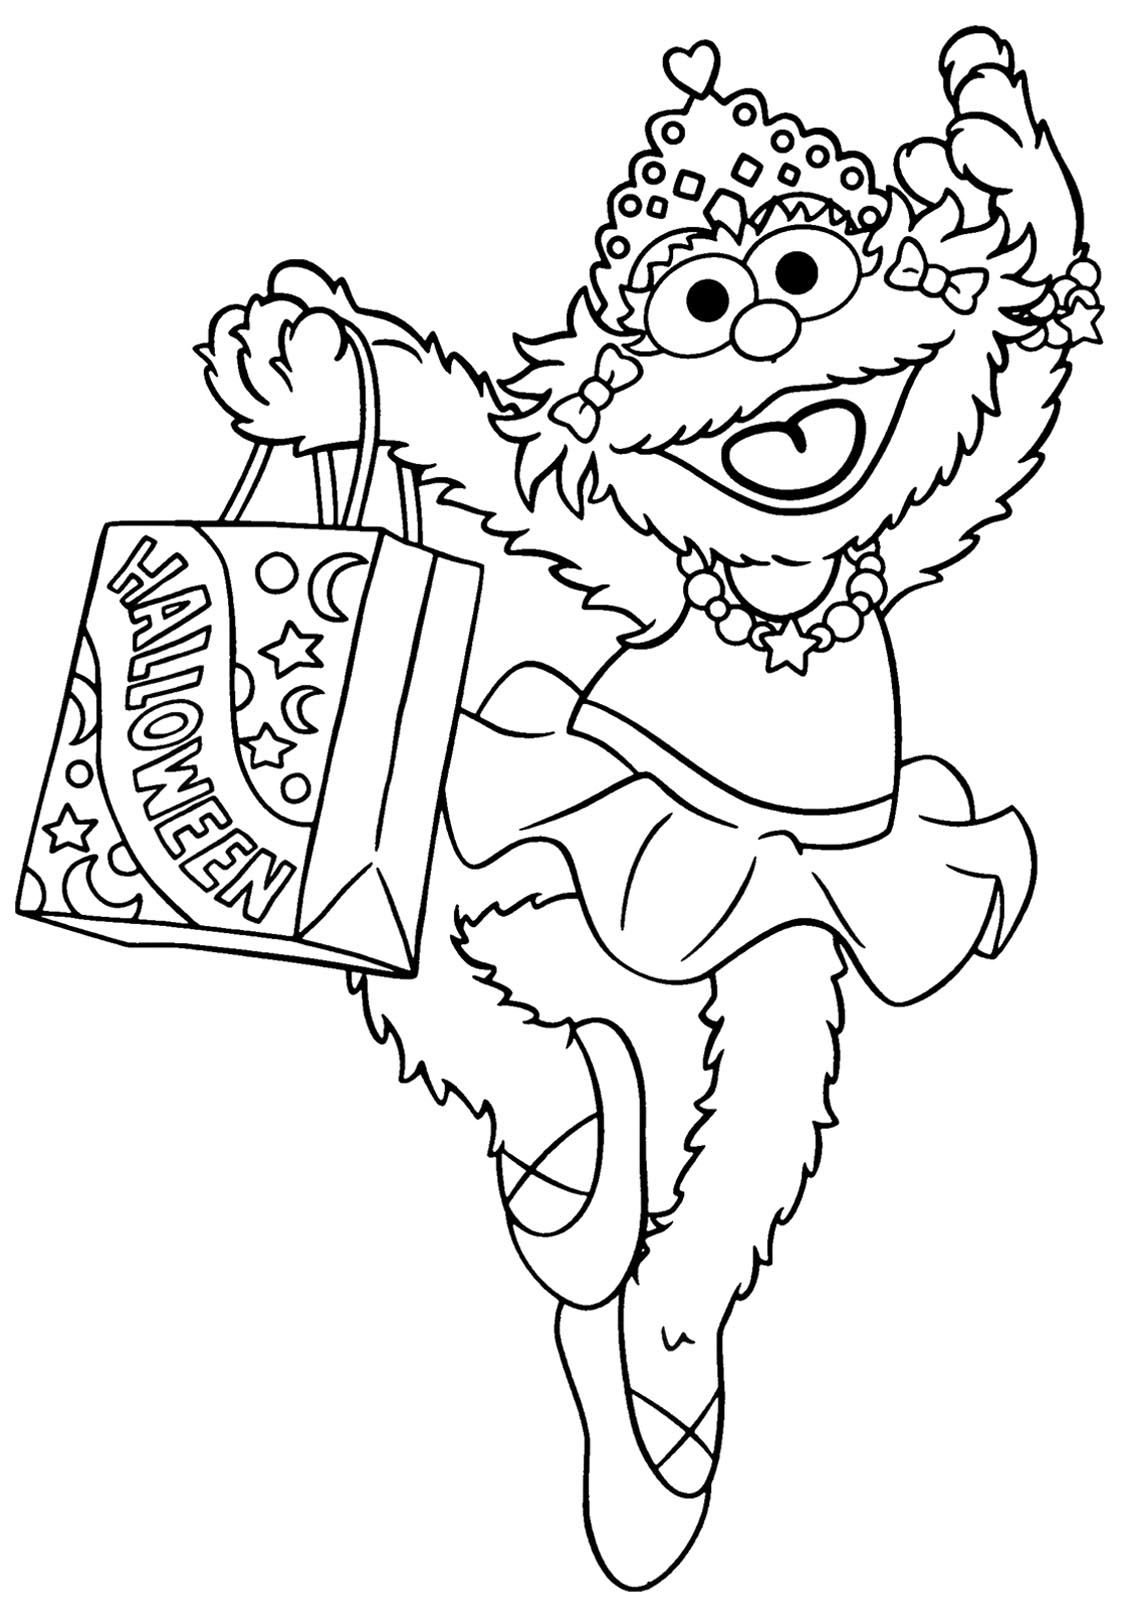 Sesame Street To Print For Free Sesame Street Kids Coloring Pages